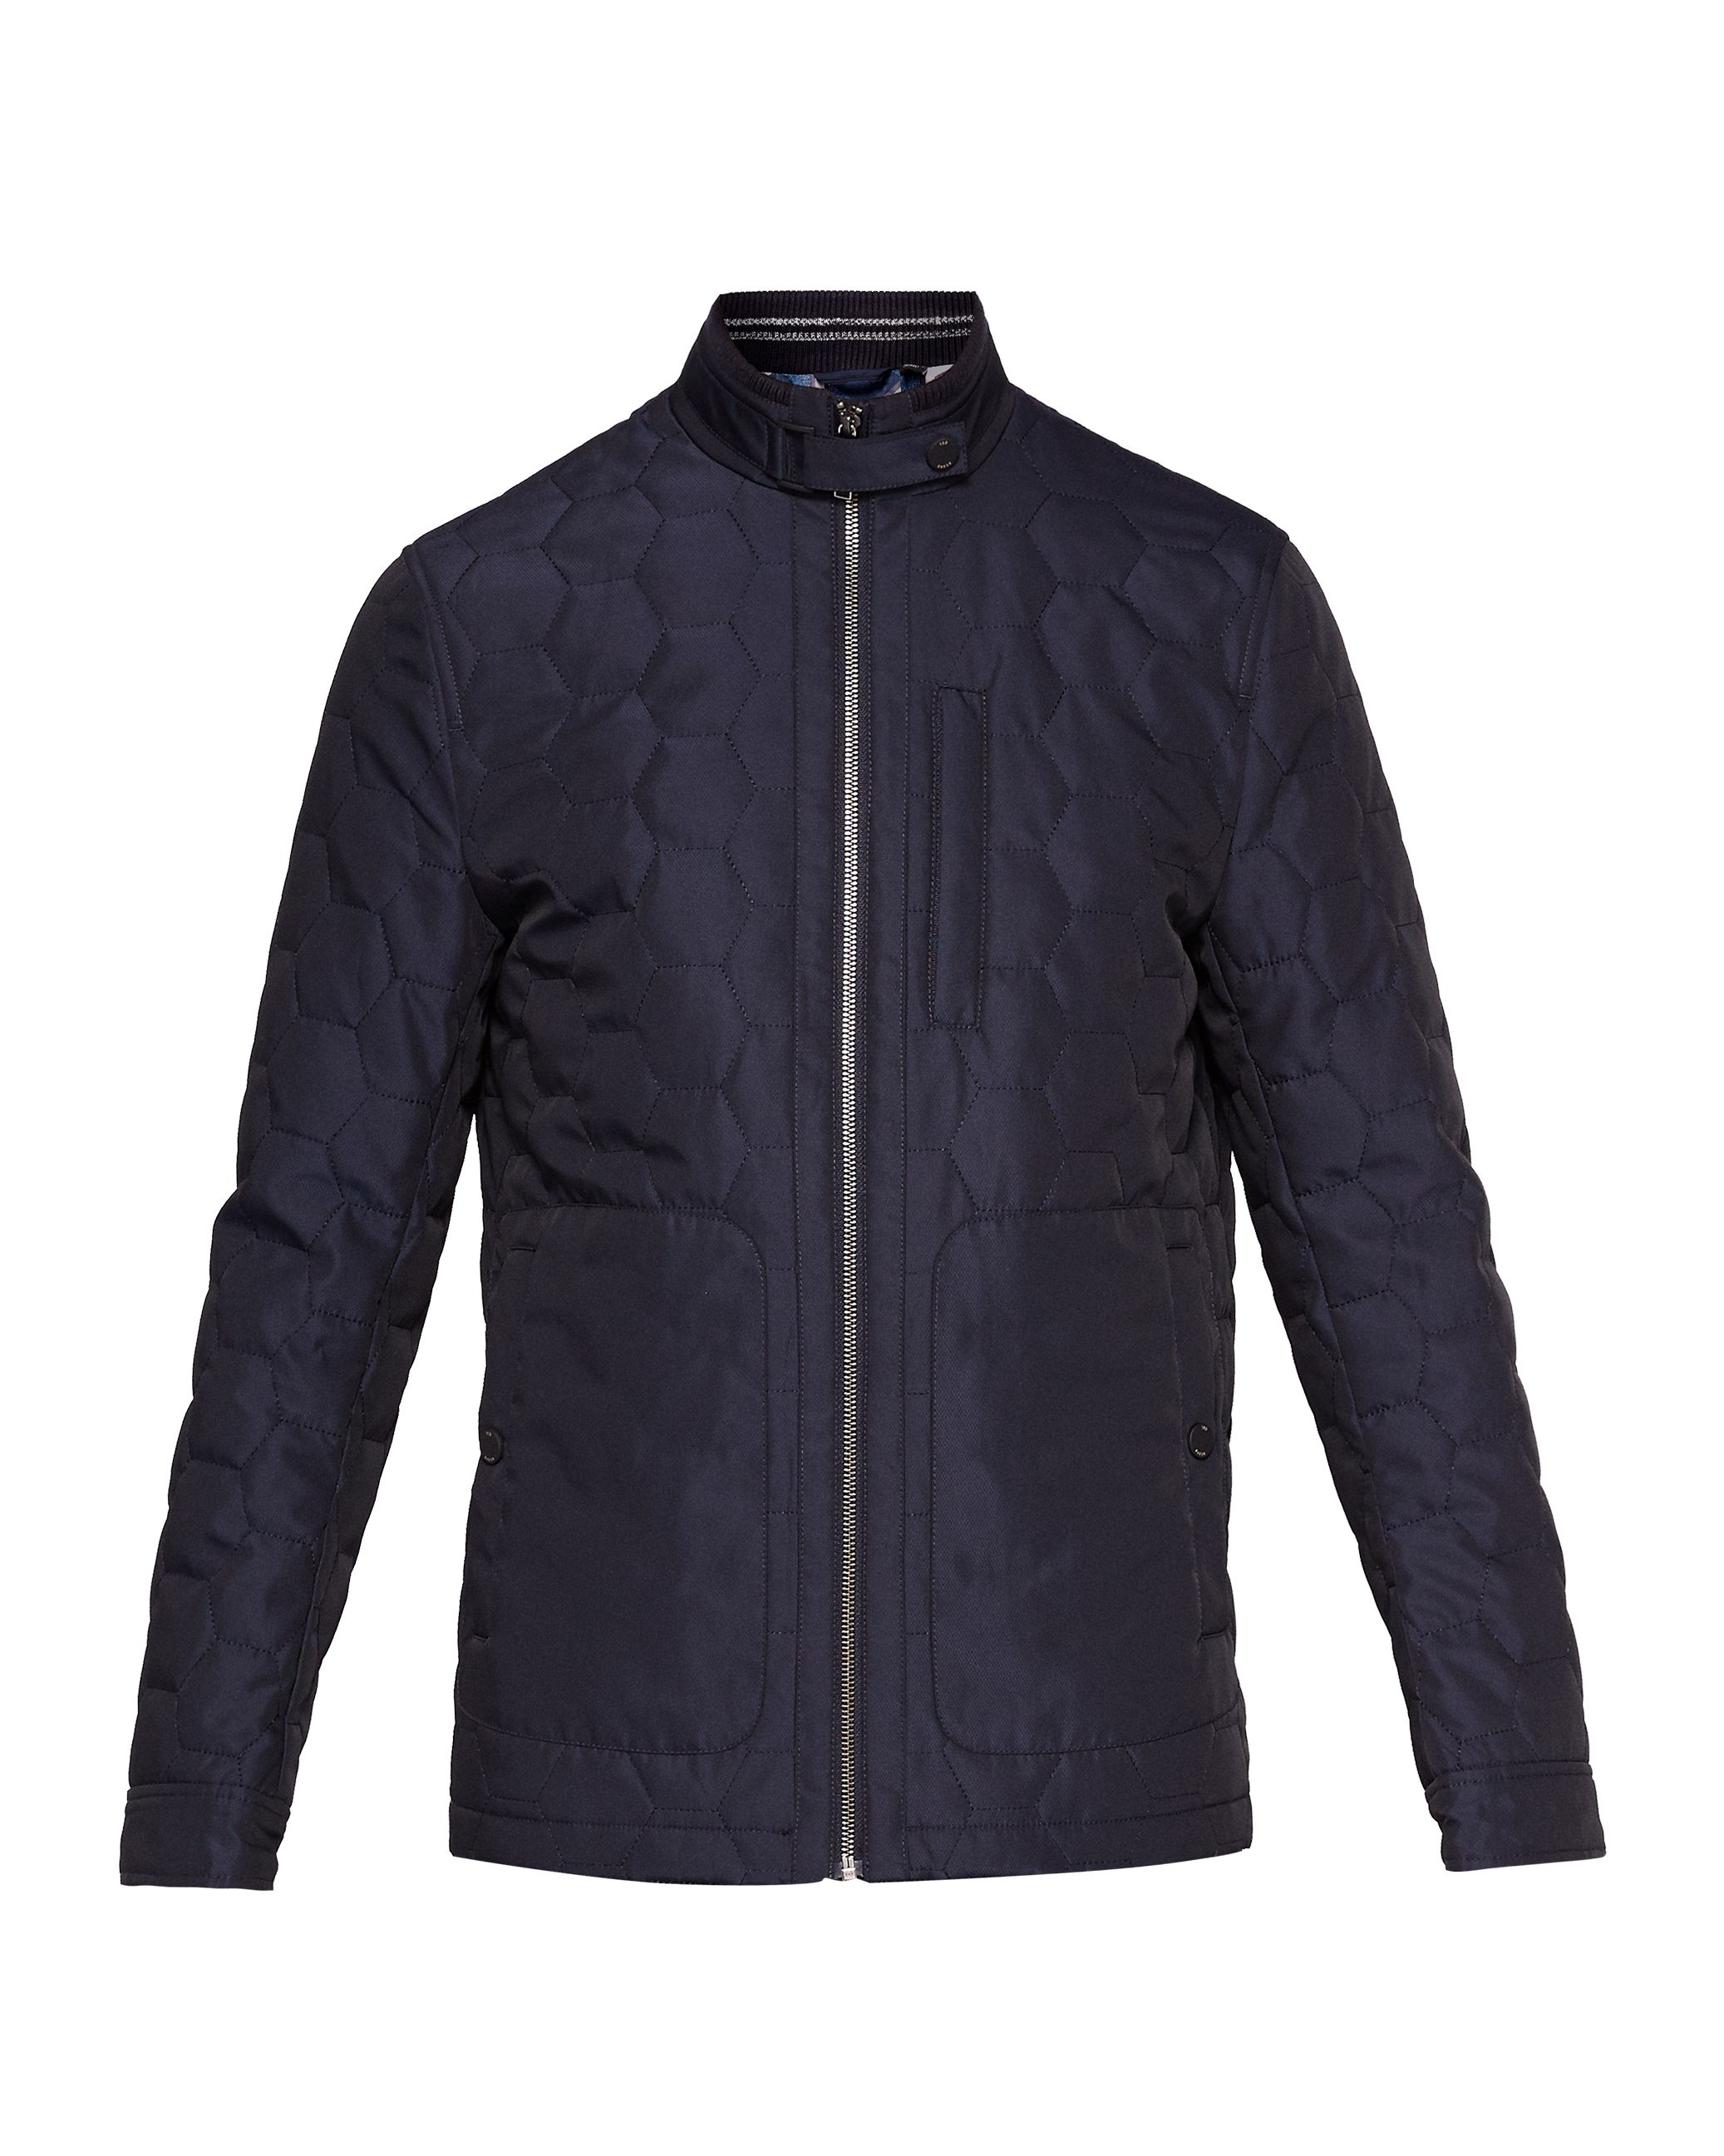 jacket the mens bomber for product in racer black normal board wakefield quilted lauren flash ralph cafe leather lyst men quilt polo caf